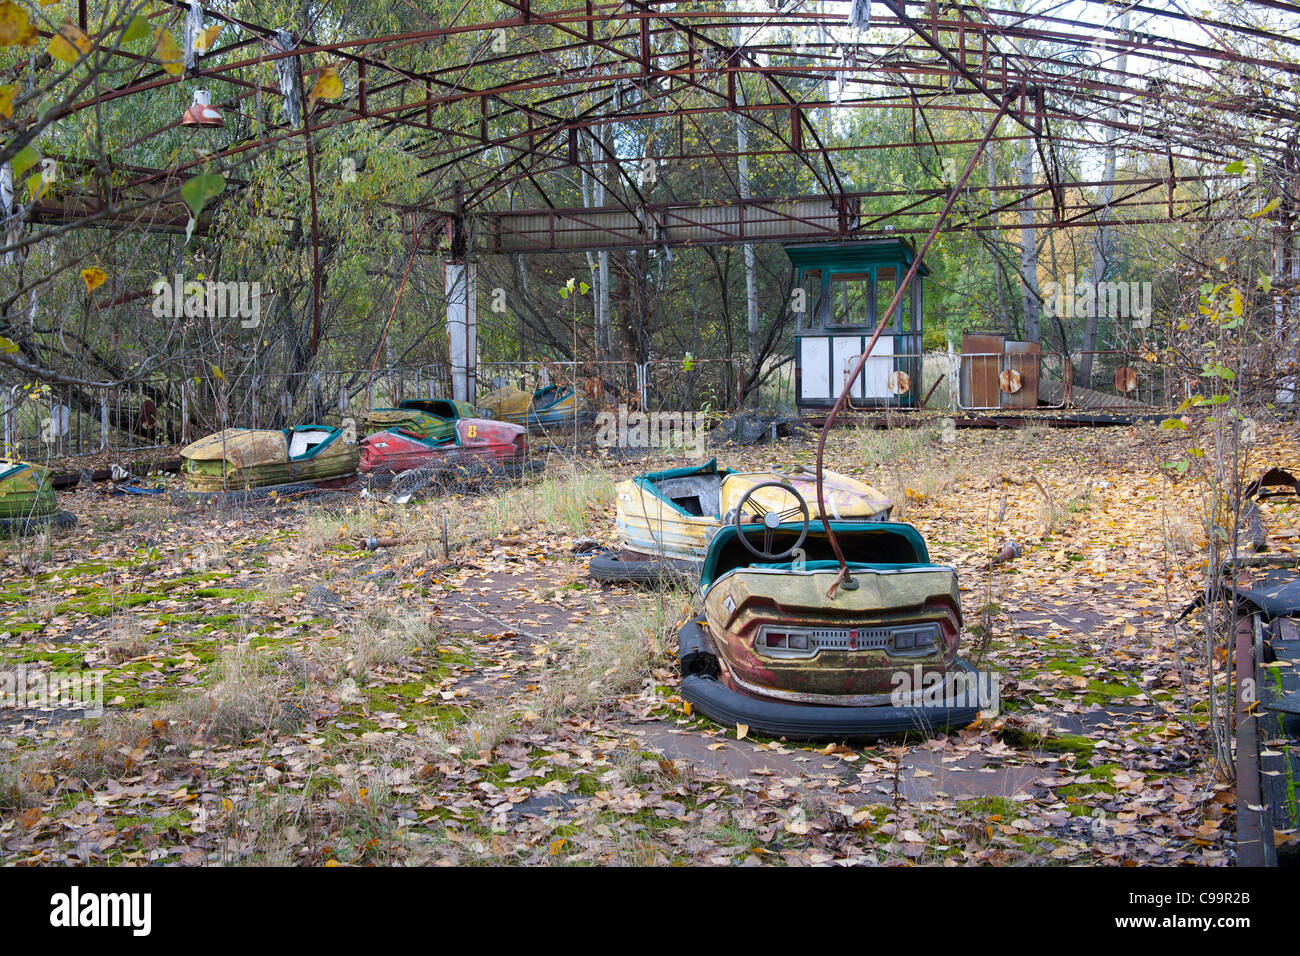 The dodgems in the Pripyat Amusement Park Pripyat Chernobyl exclusion zone Ukraine - Stock Image